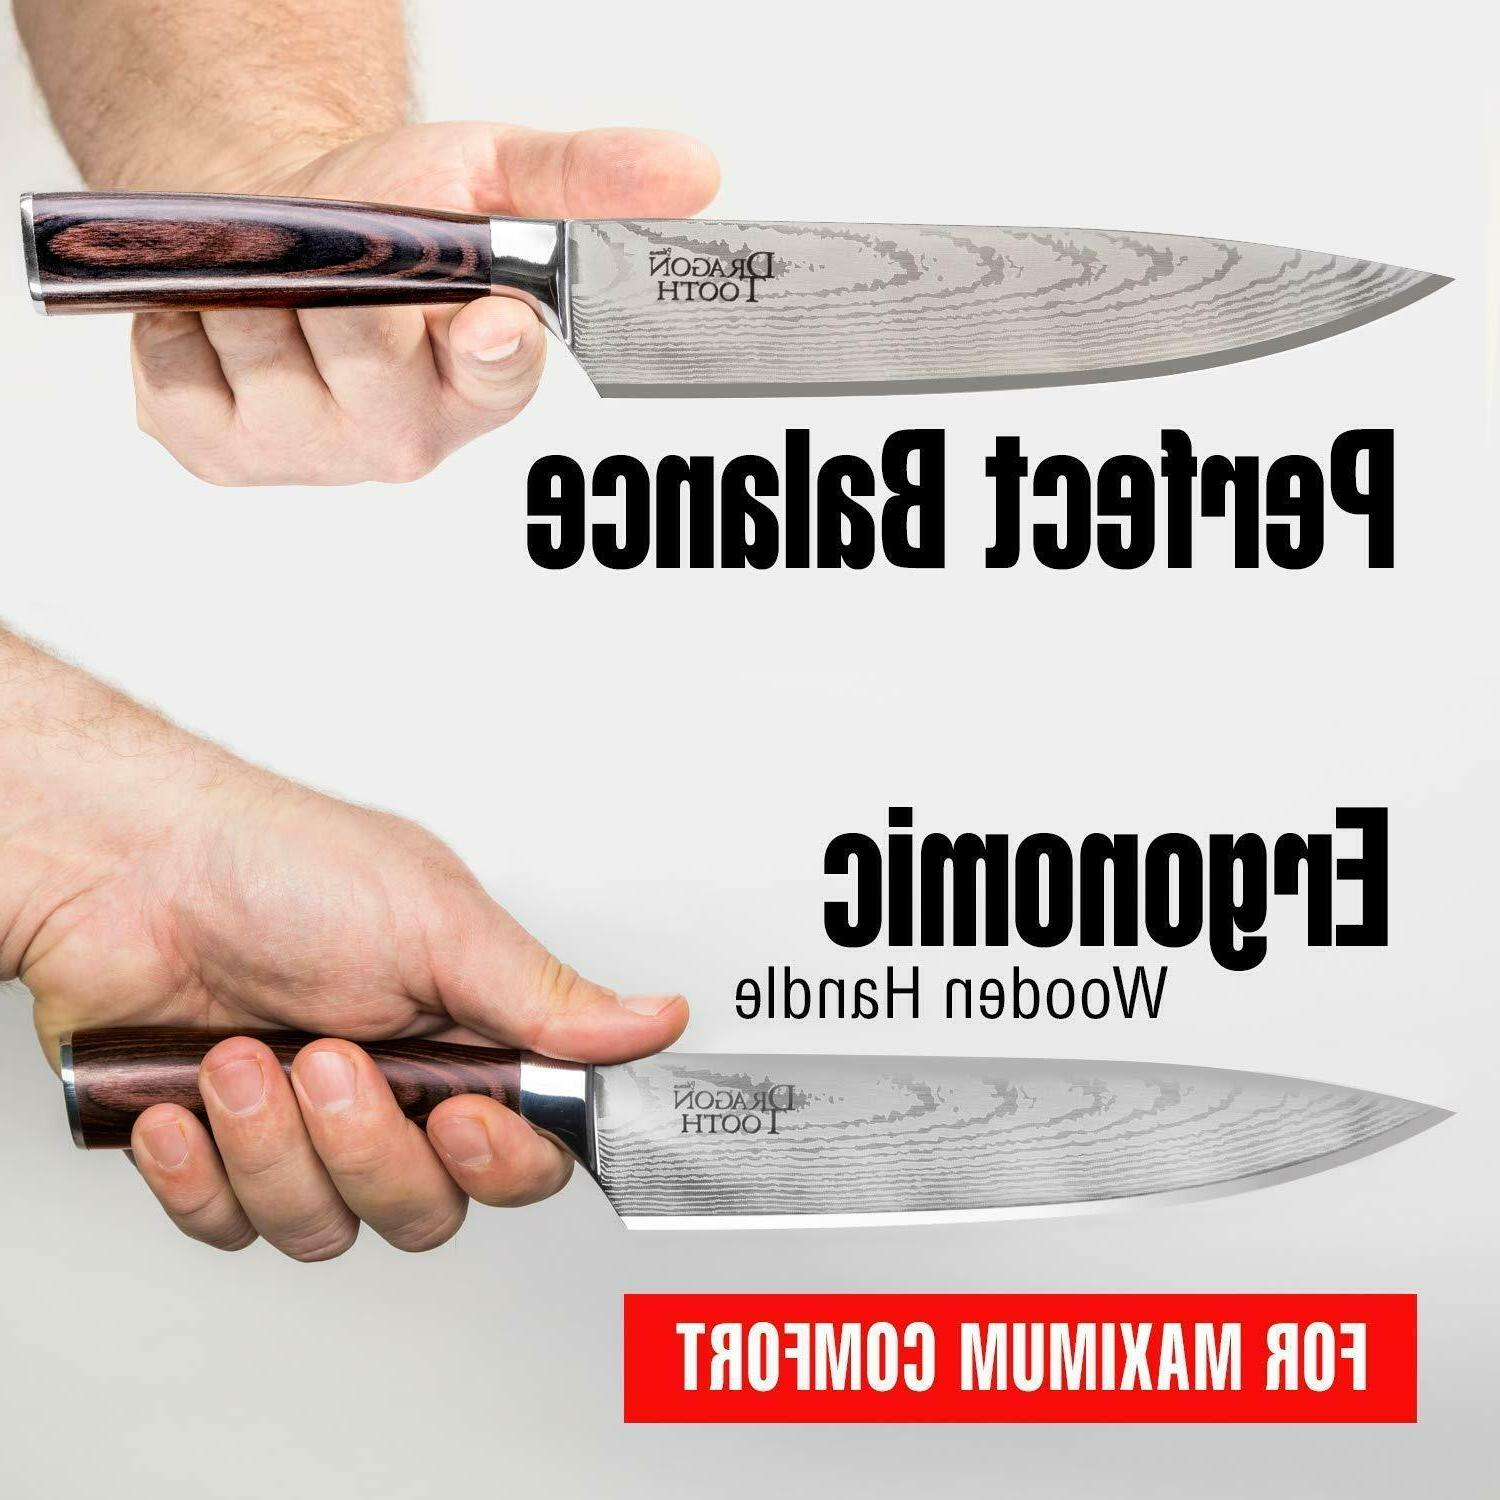 FIRE Chef 8 Inch Steel Damascus Kitchen Professional Knives